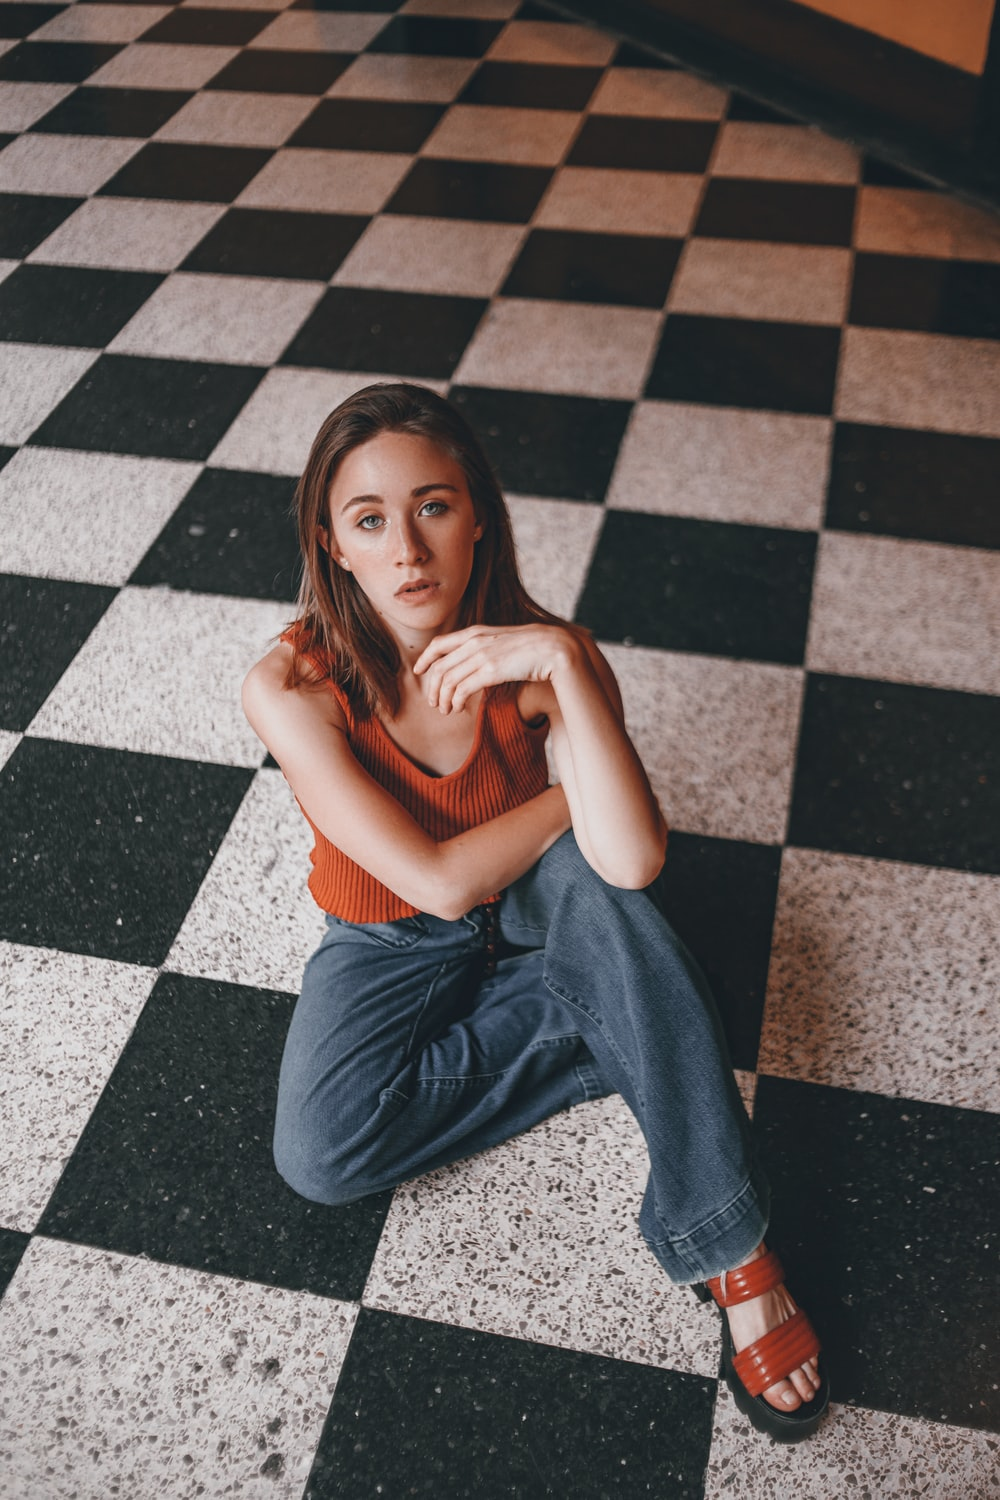 woman in brown tank top and blue jeans sitting on floor